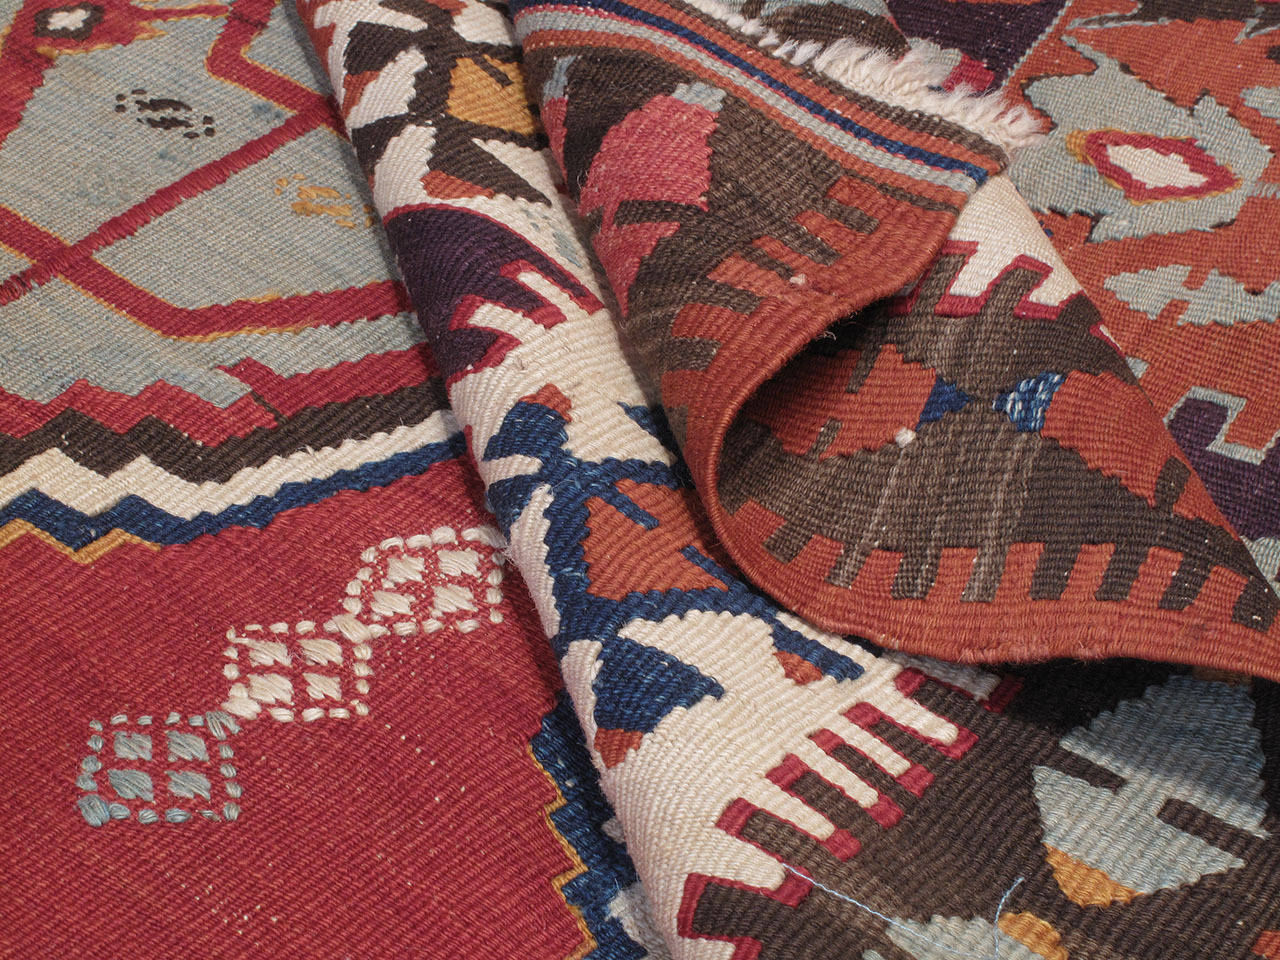 Early 20th Century Antique Central Anatolian Kilim with